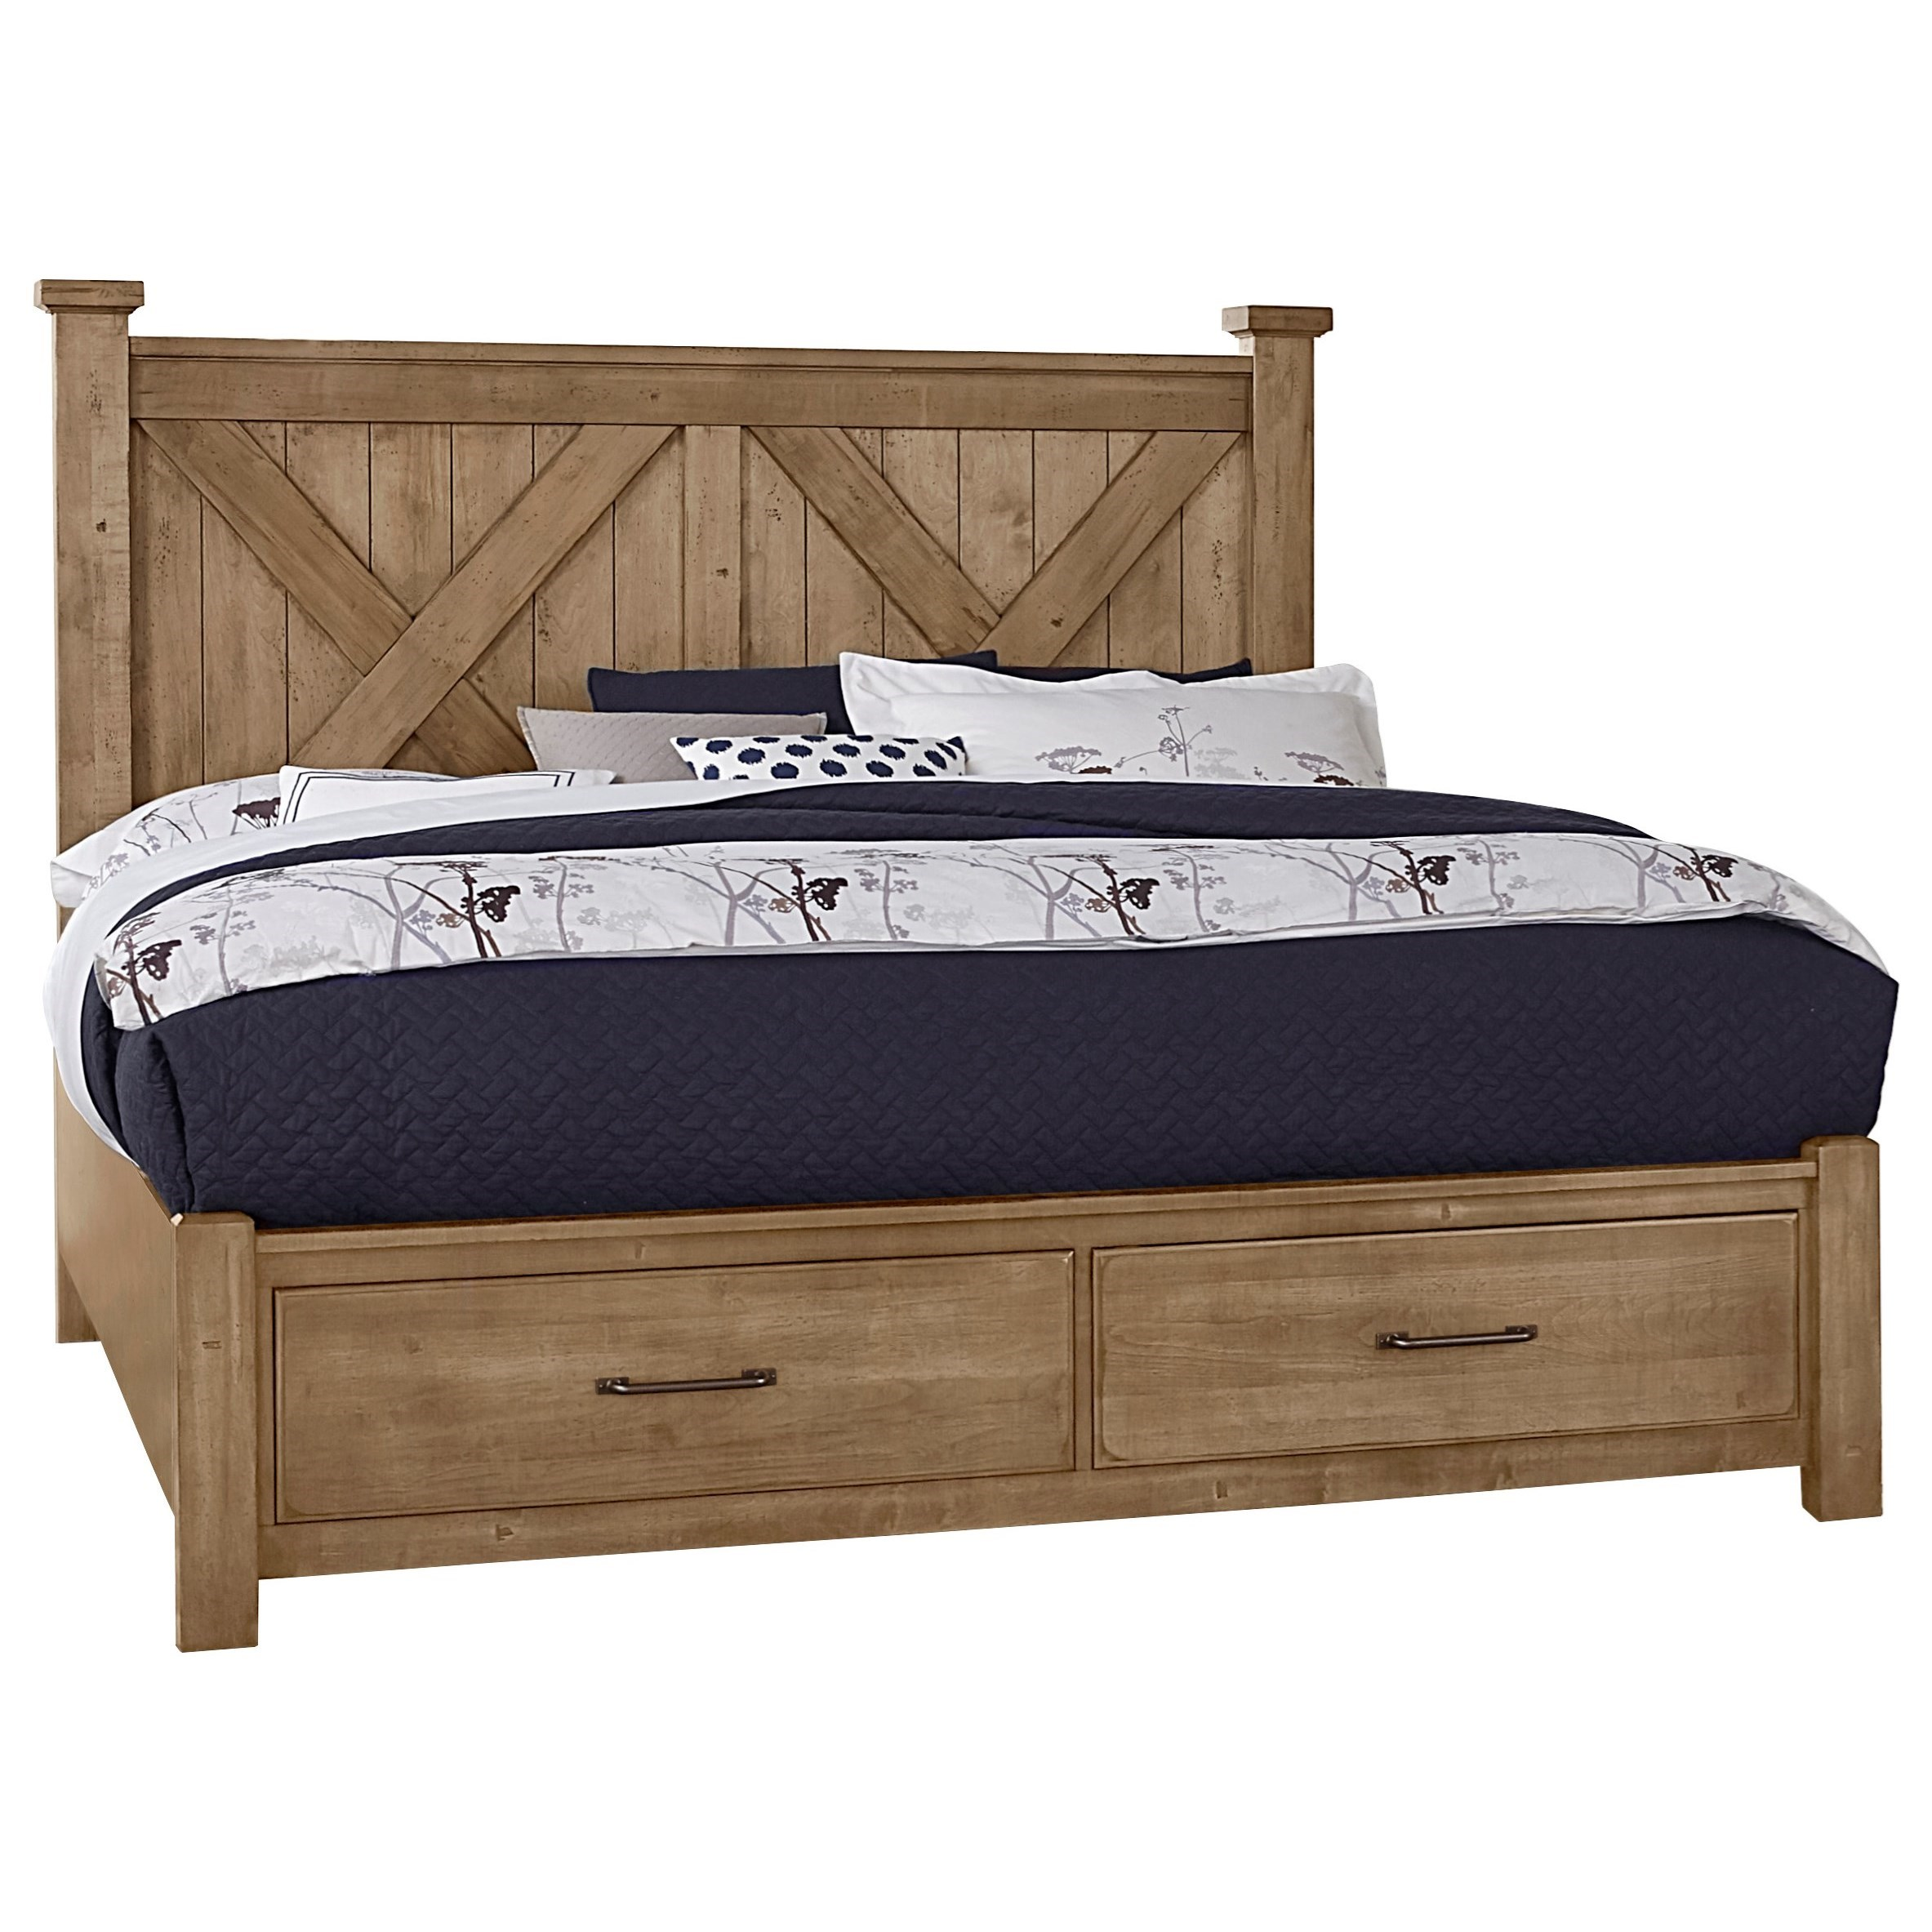 Cool Rustic King X Bed with Storage Footboard by Artisan & Post at Northeast Factory Direct